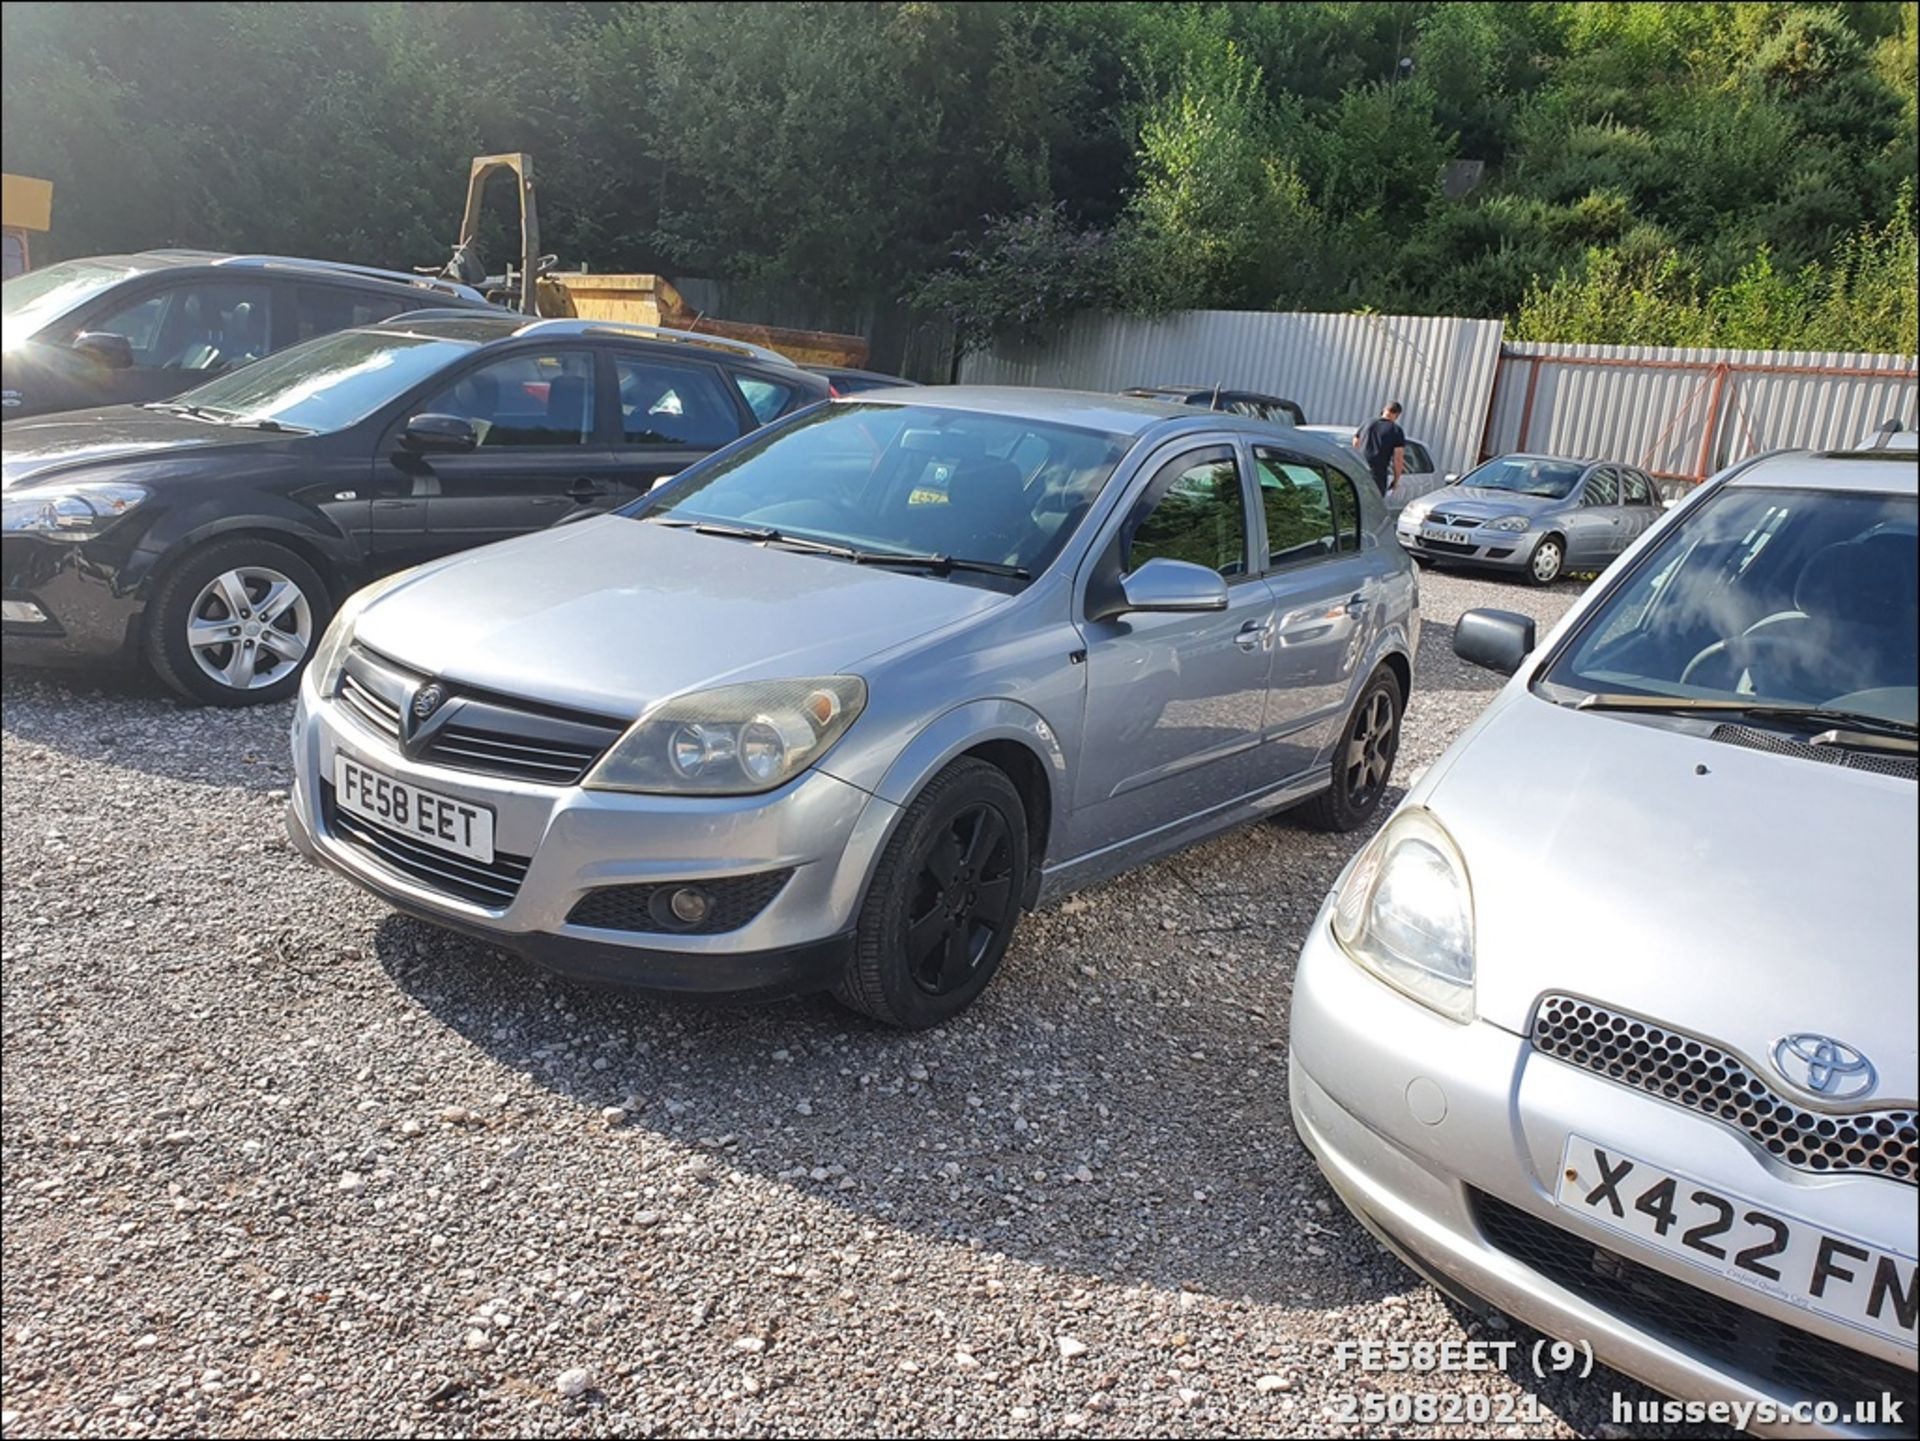 08/58 VAUXHALL ASTRA CLUB CDTI 100 - 1686cc 5dr Hatchback (Silver, 115k) - Image 9 of 15